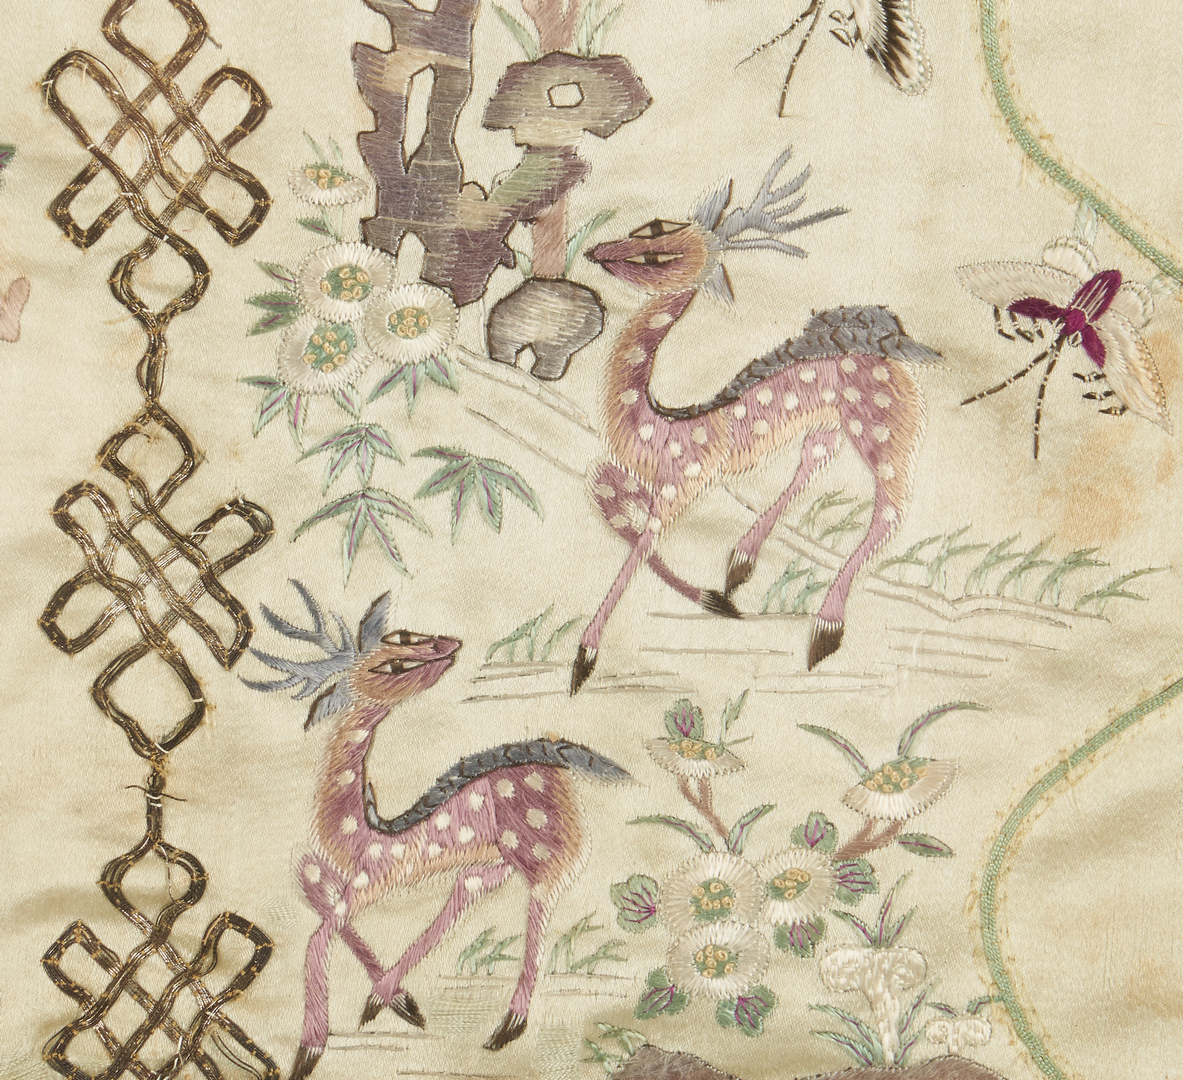 Lot 23: 4 Chinese Embroideries, incl. 2 w/ Deer